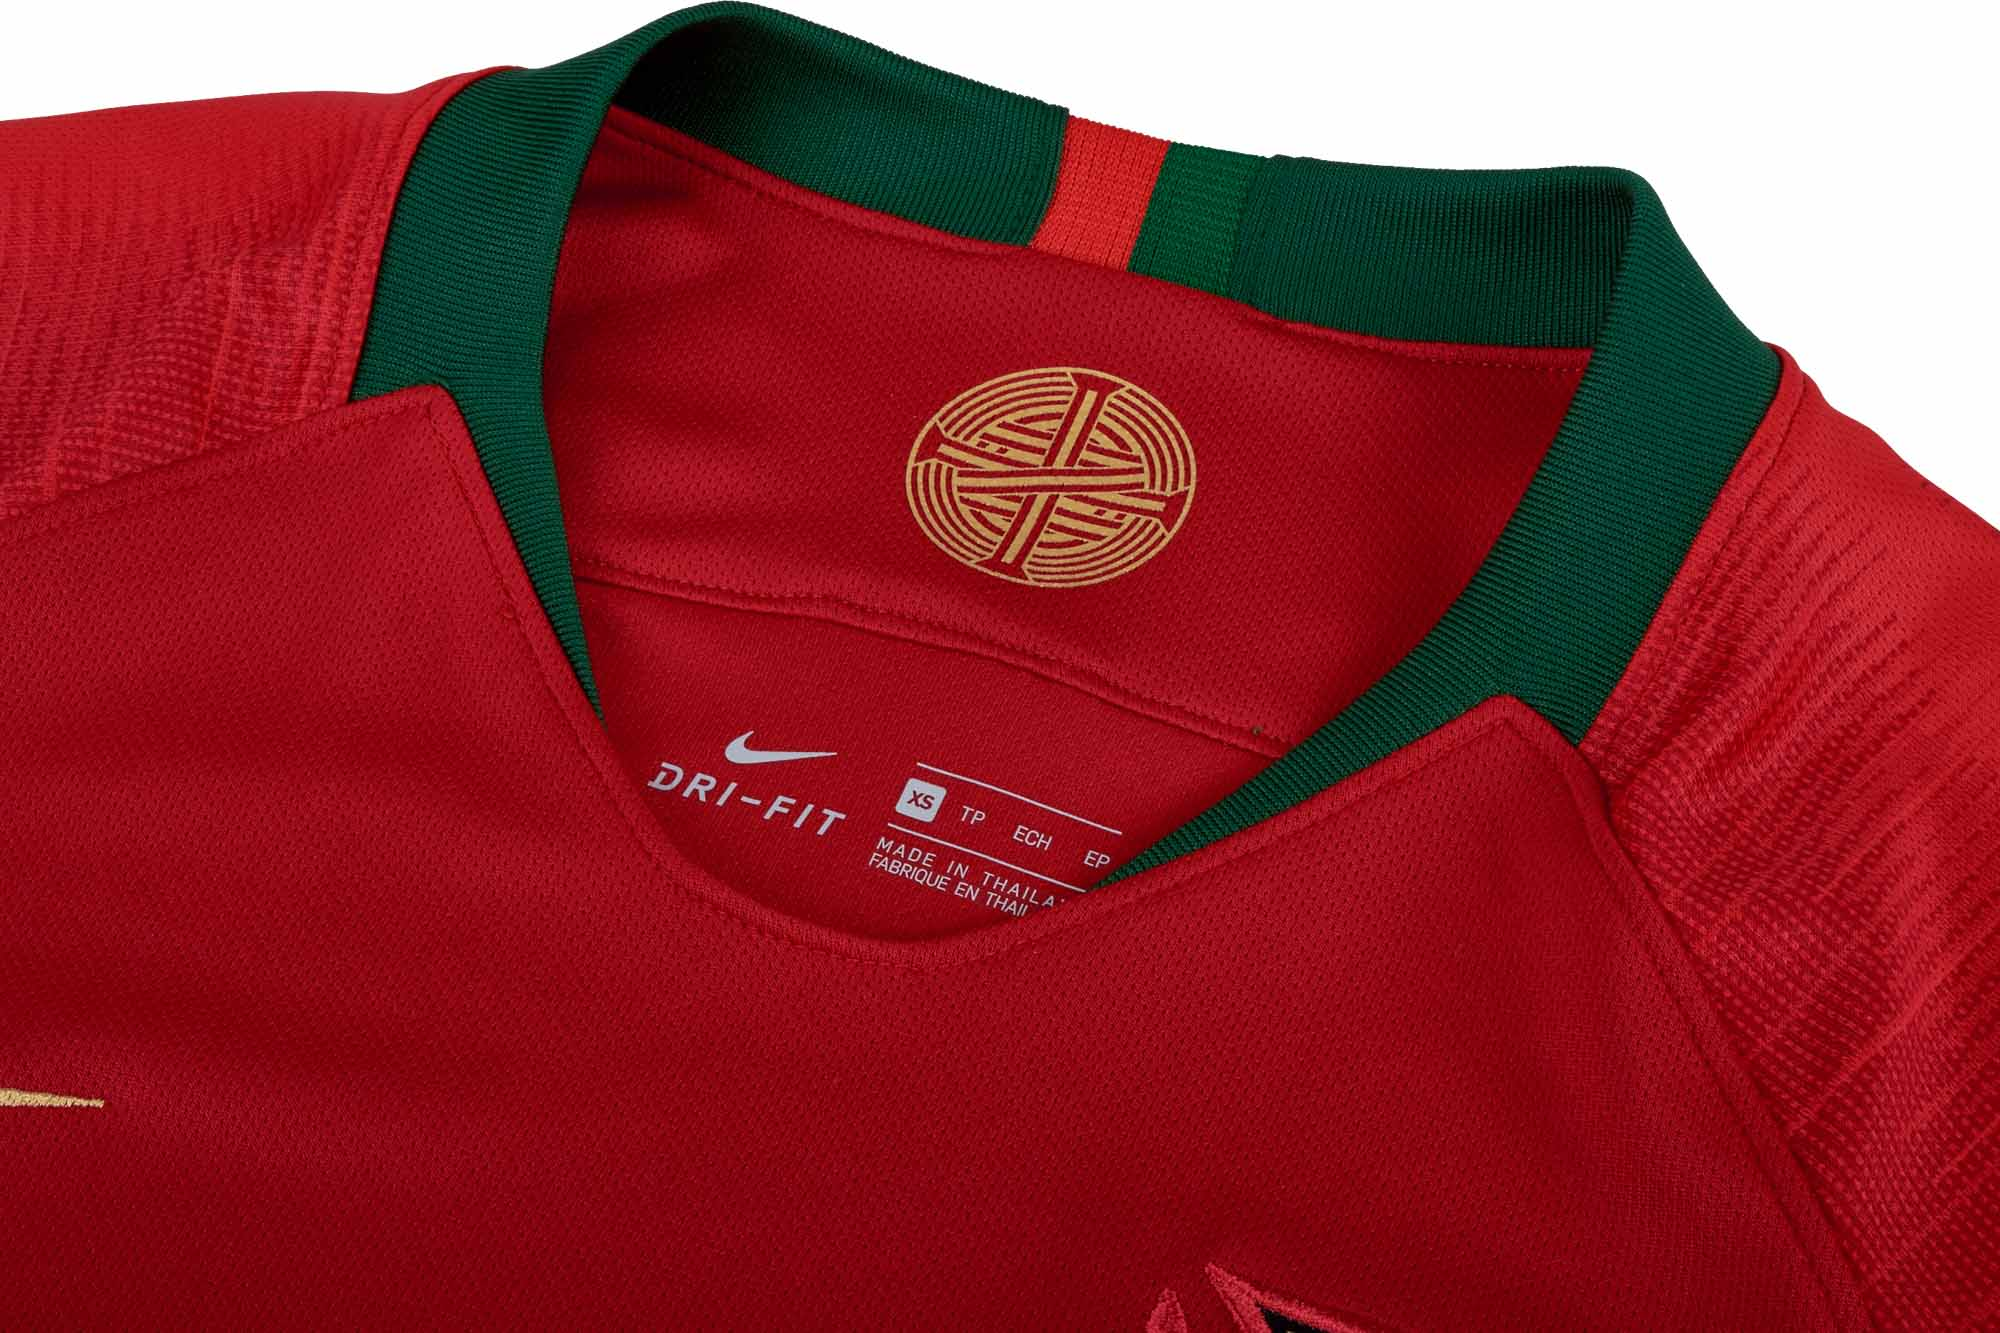 meilleur authentique 99cd3 c364d Nike Portugal Home Jersey - Womens 2018-19 - SoccerPro